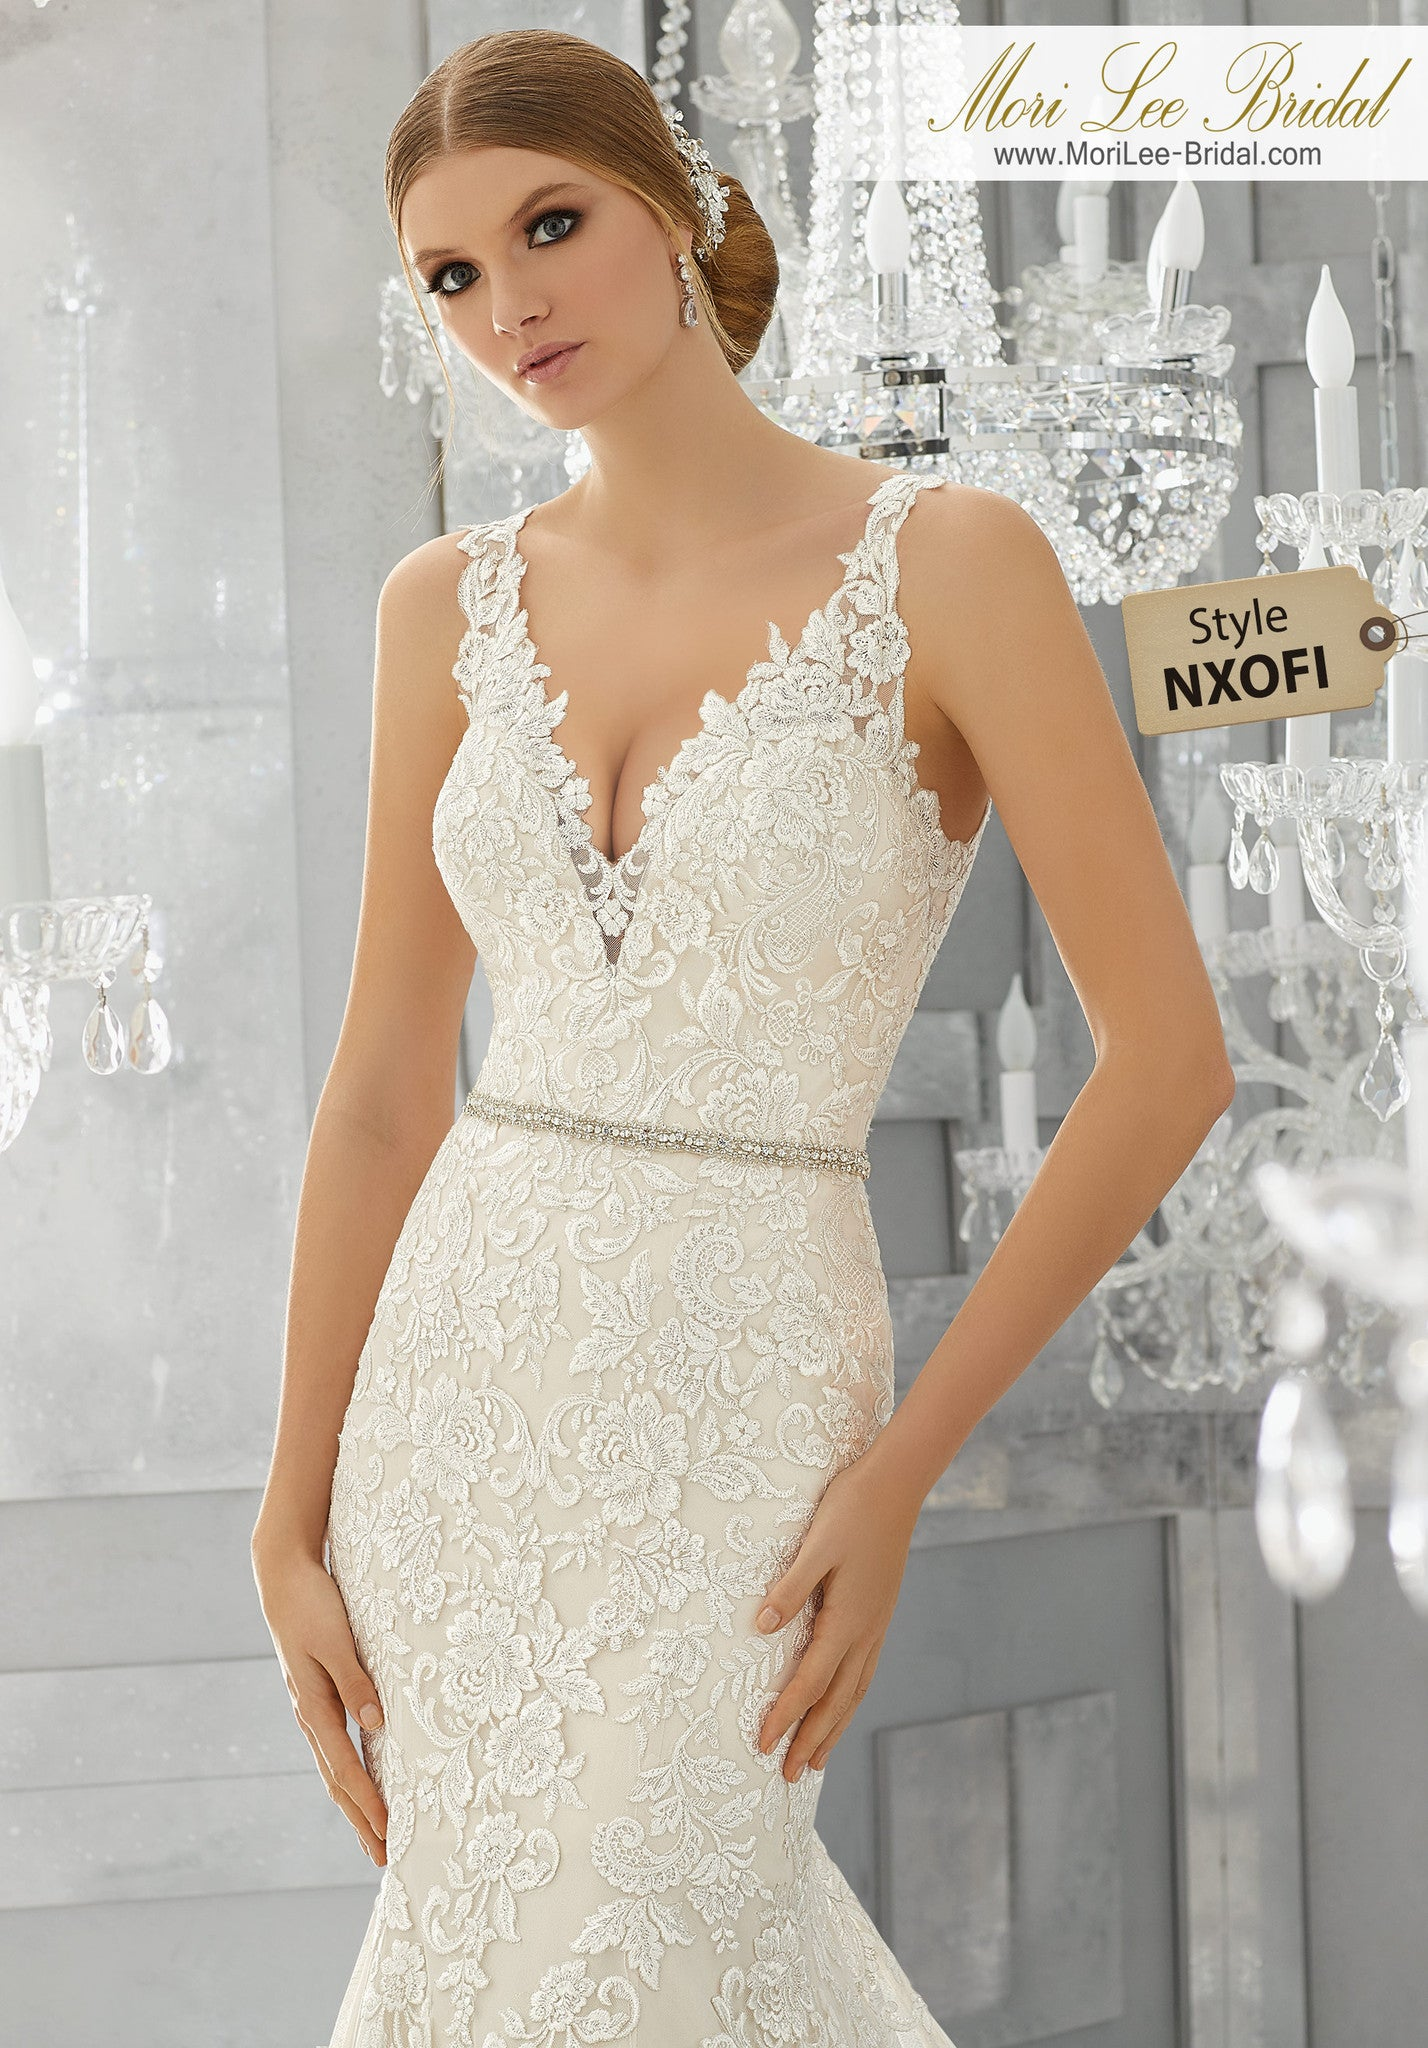 NXOFI - Mori Lee Bridal